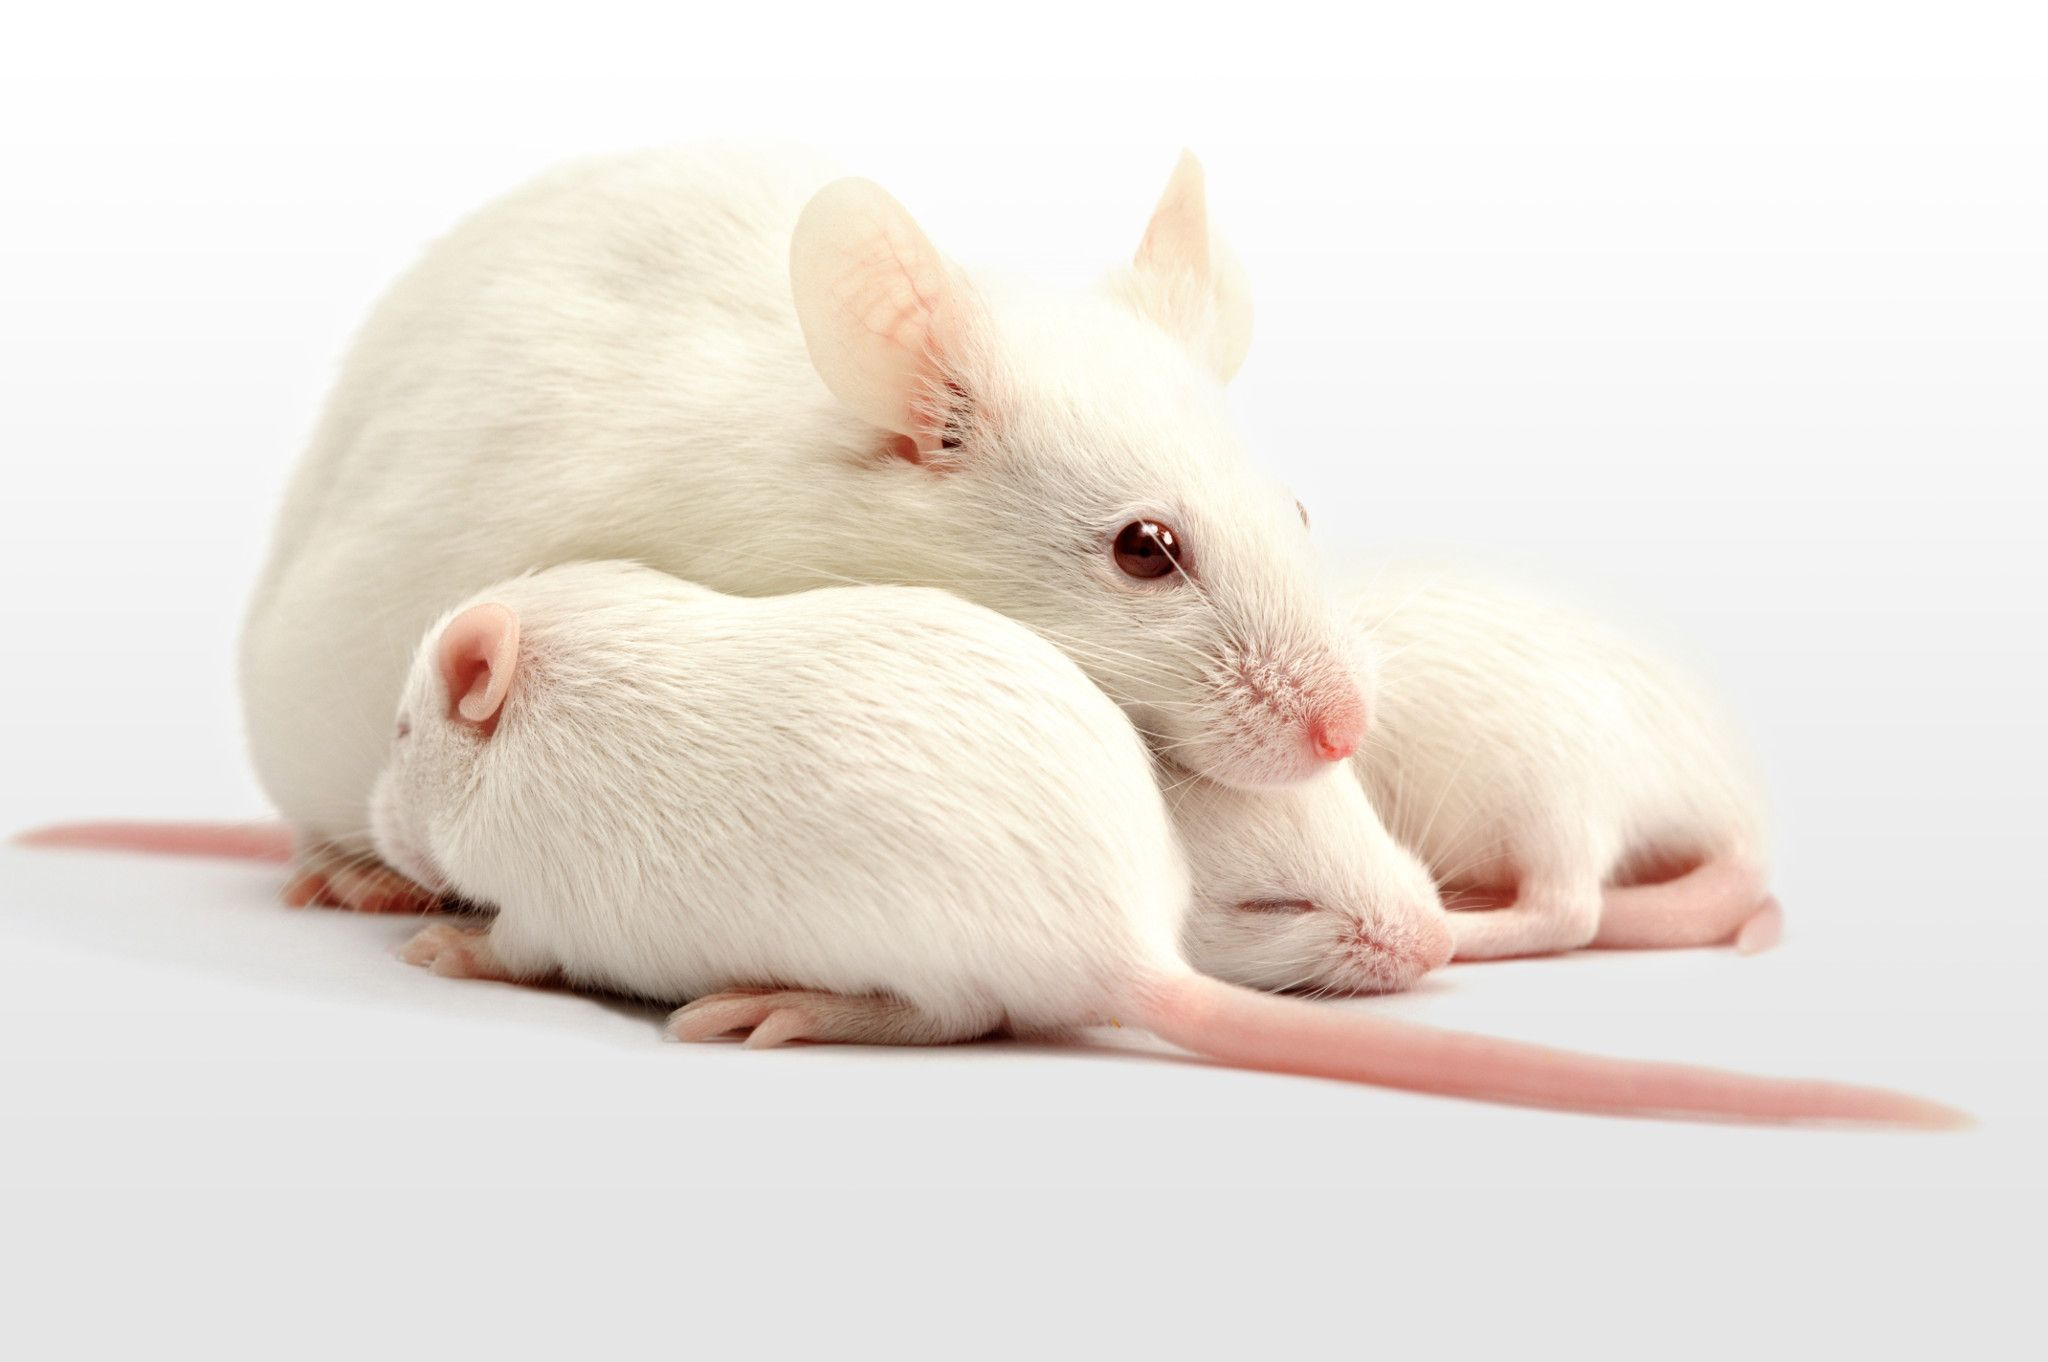 Group of white rats in front of a white background.